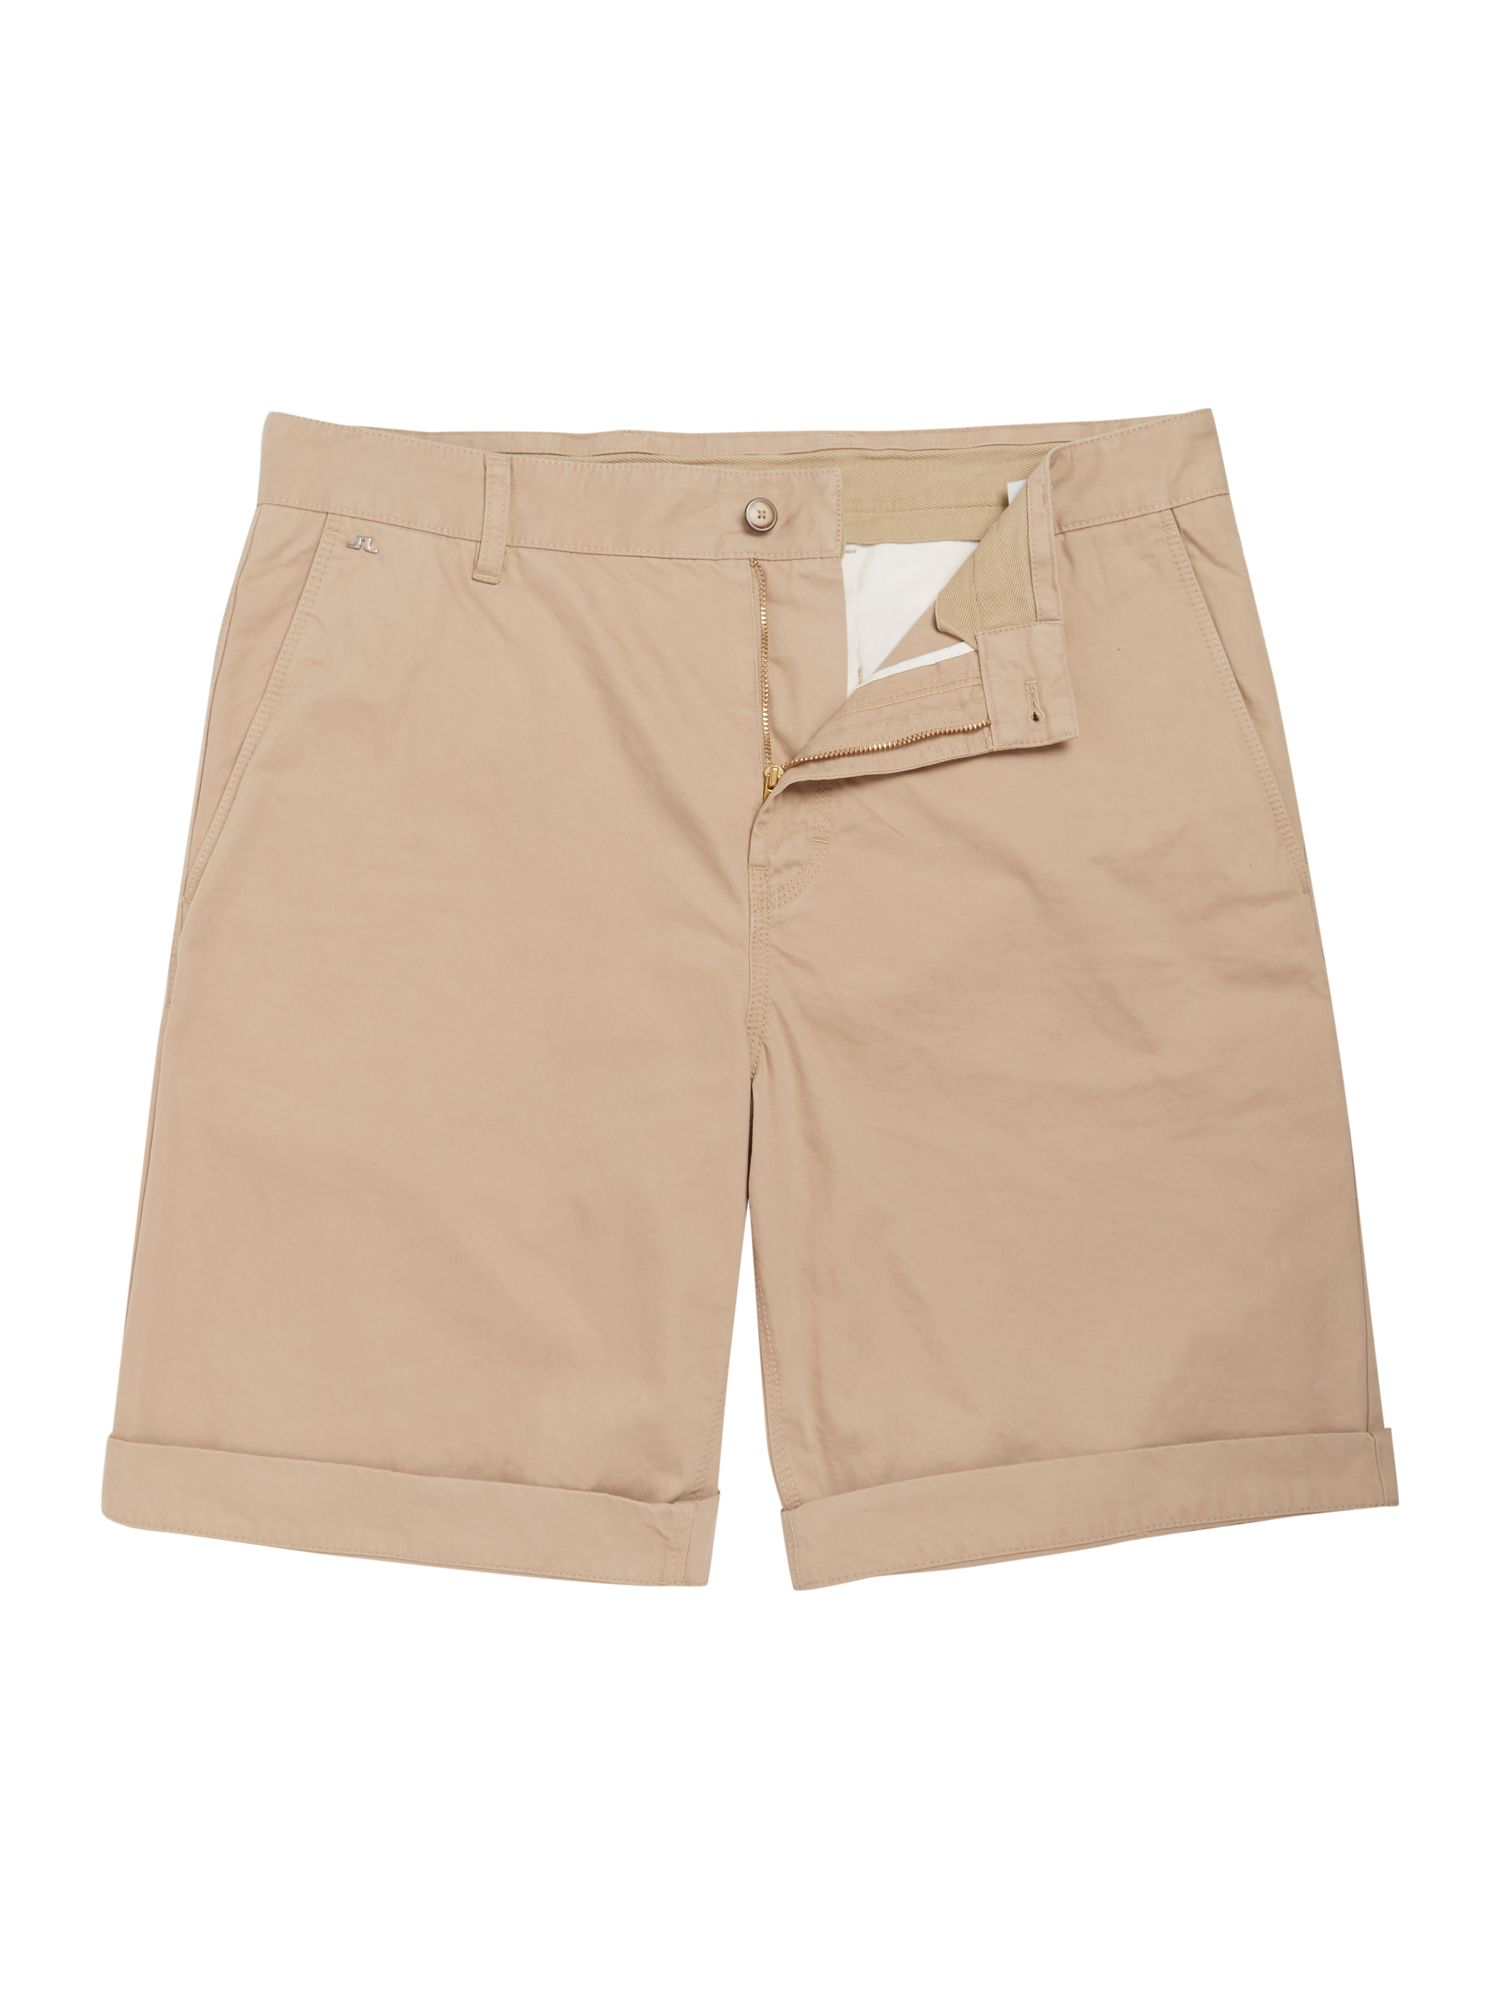 Four pocket shorts